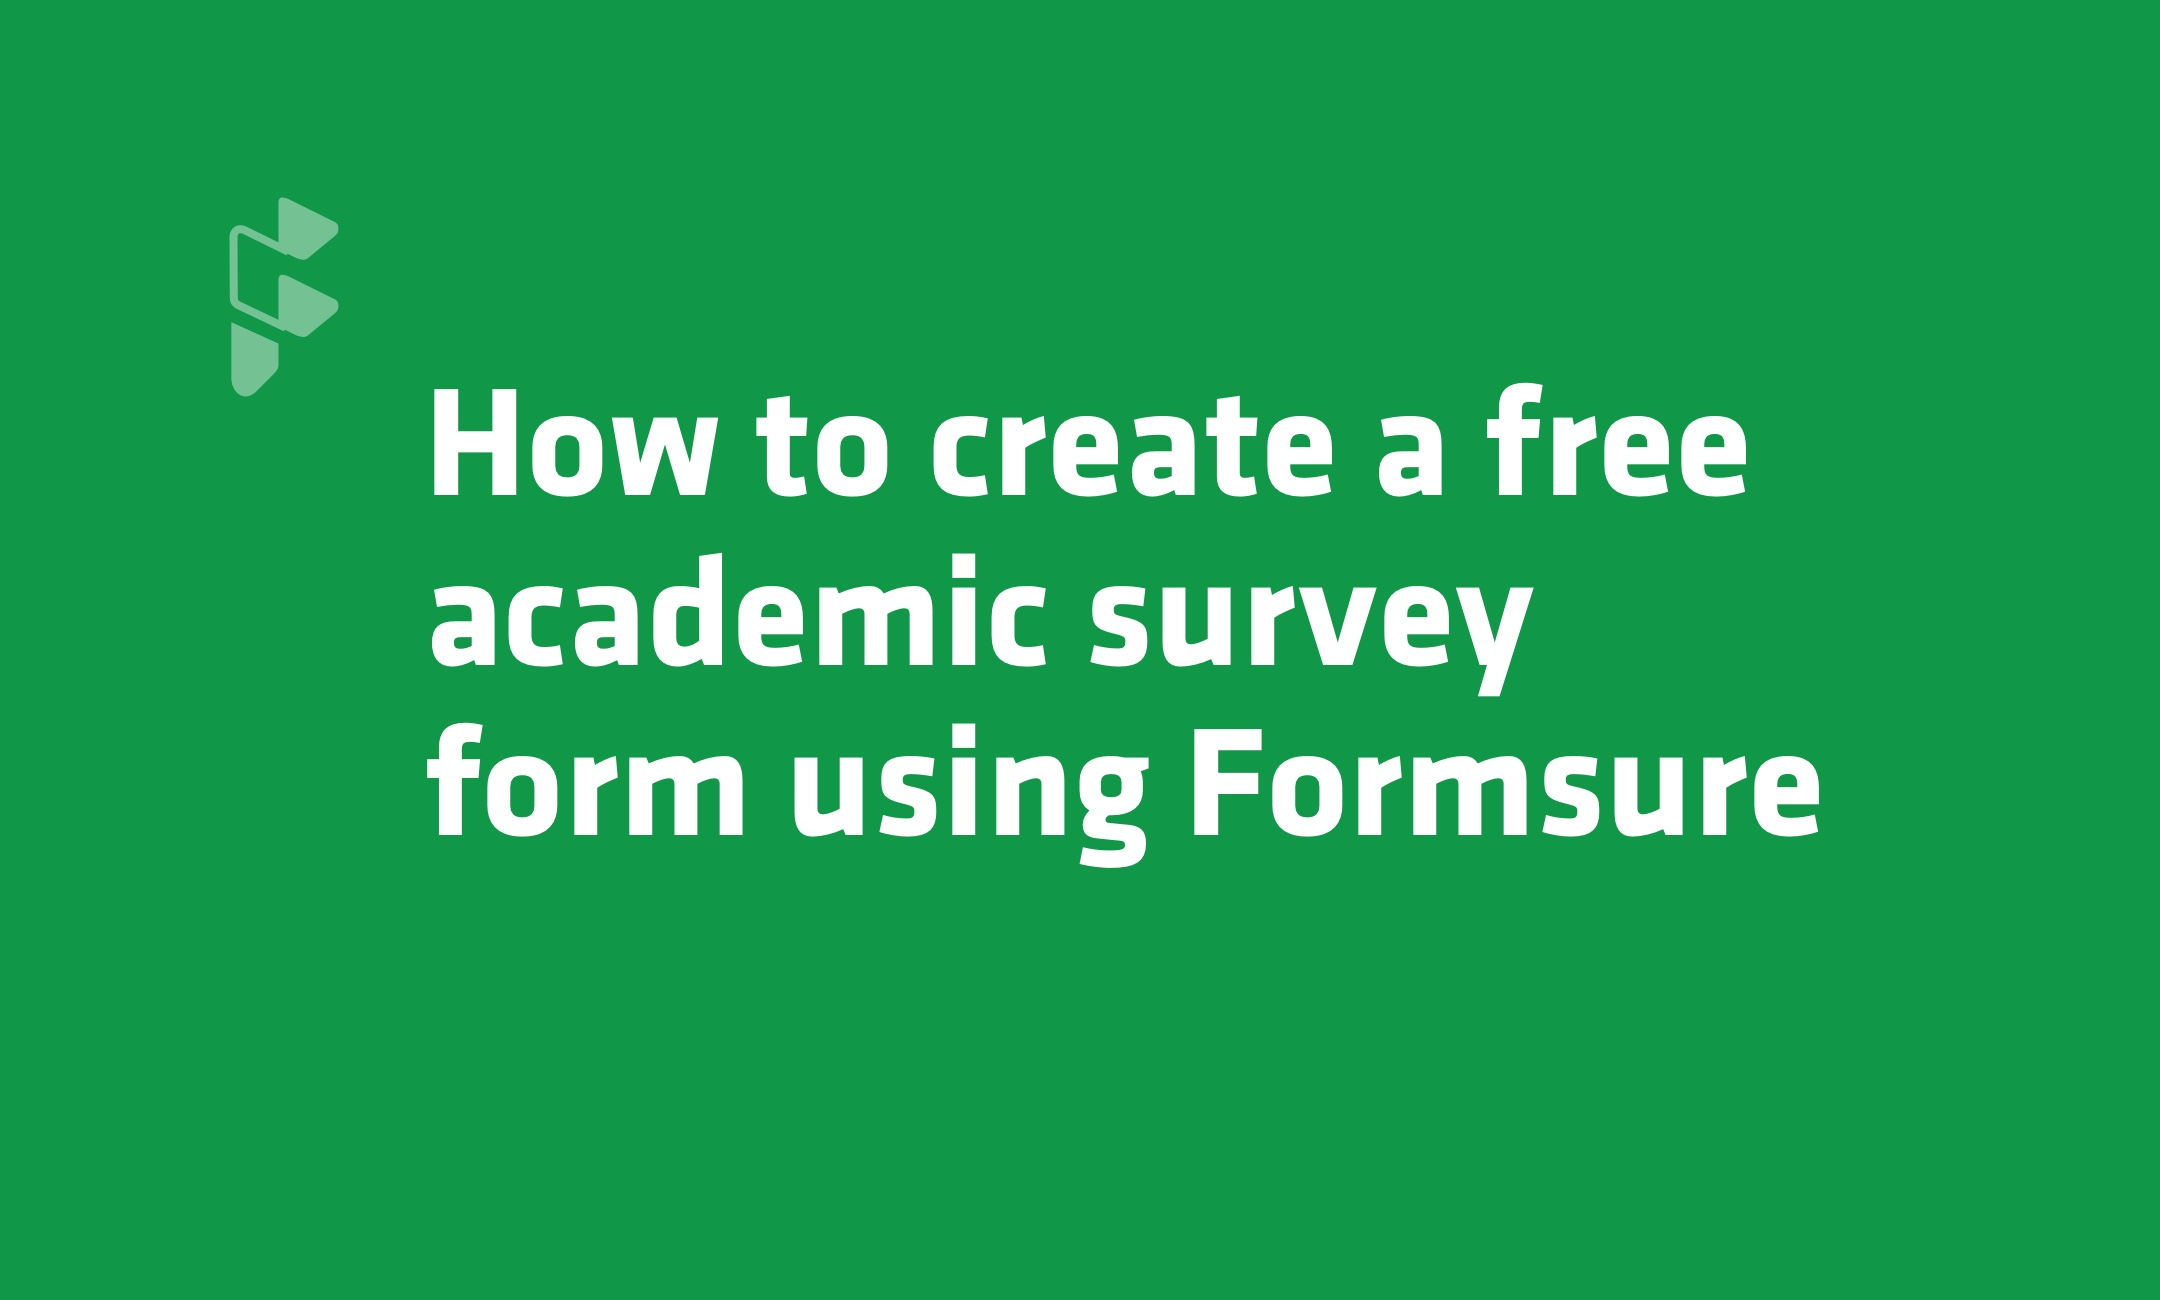 How to create An Academic Survey With Formsure - Formsure